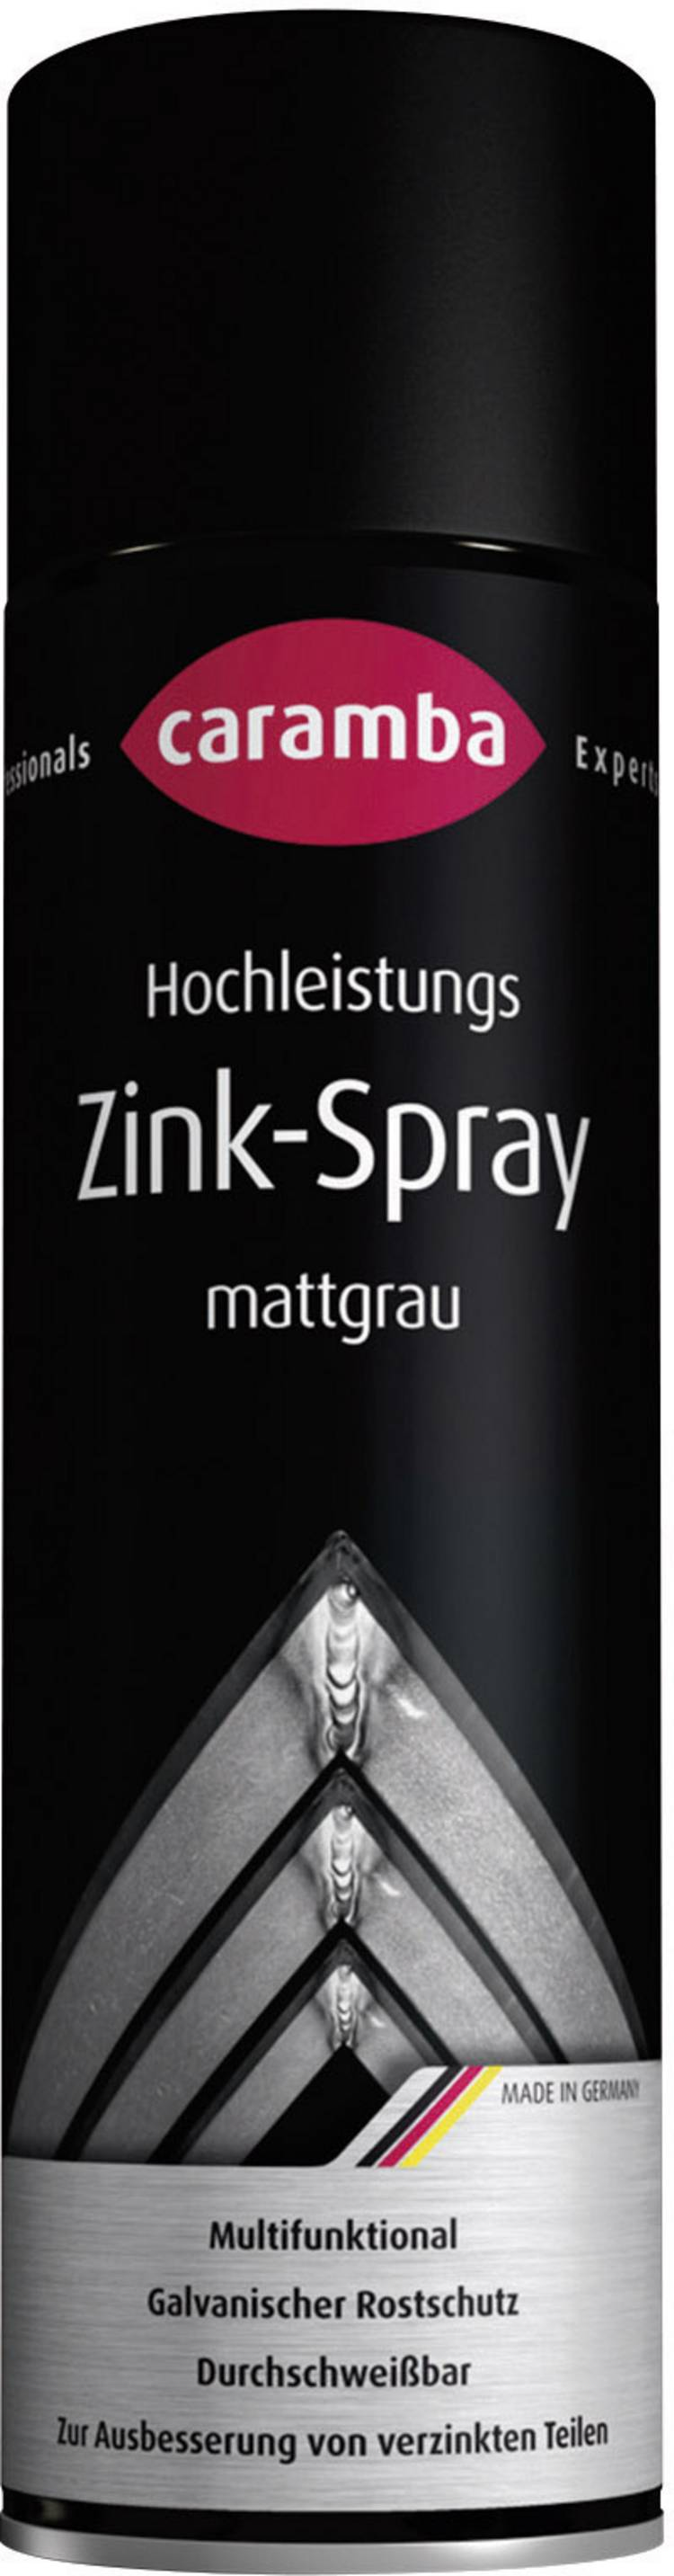 Image of Zink-spray matgrijs 500 ml Caramba 60388505